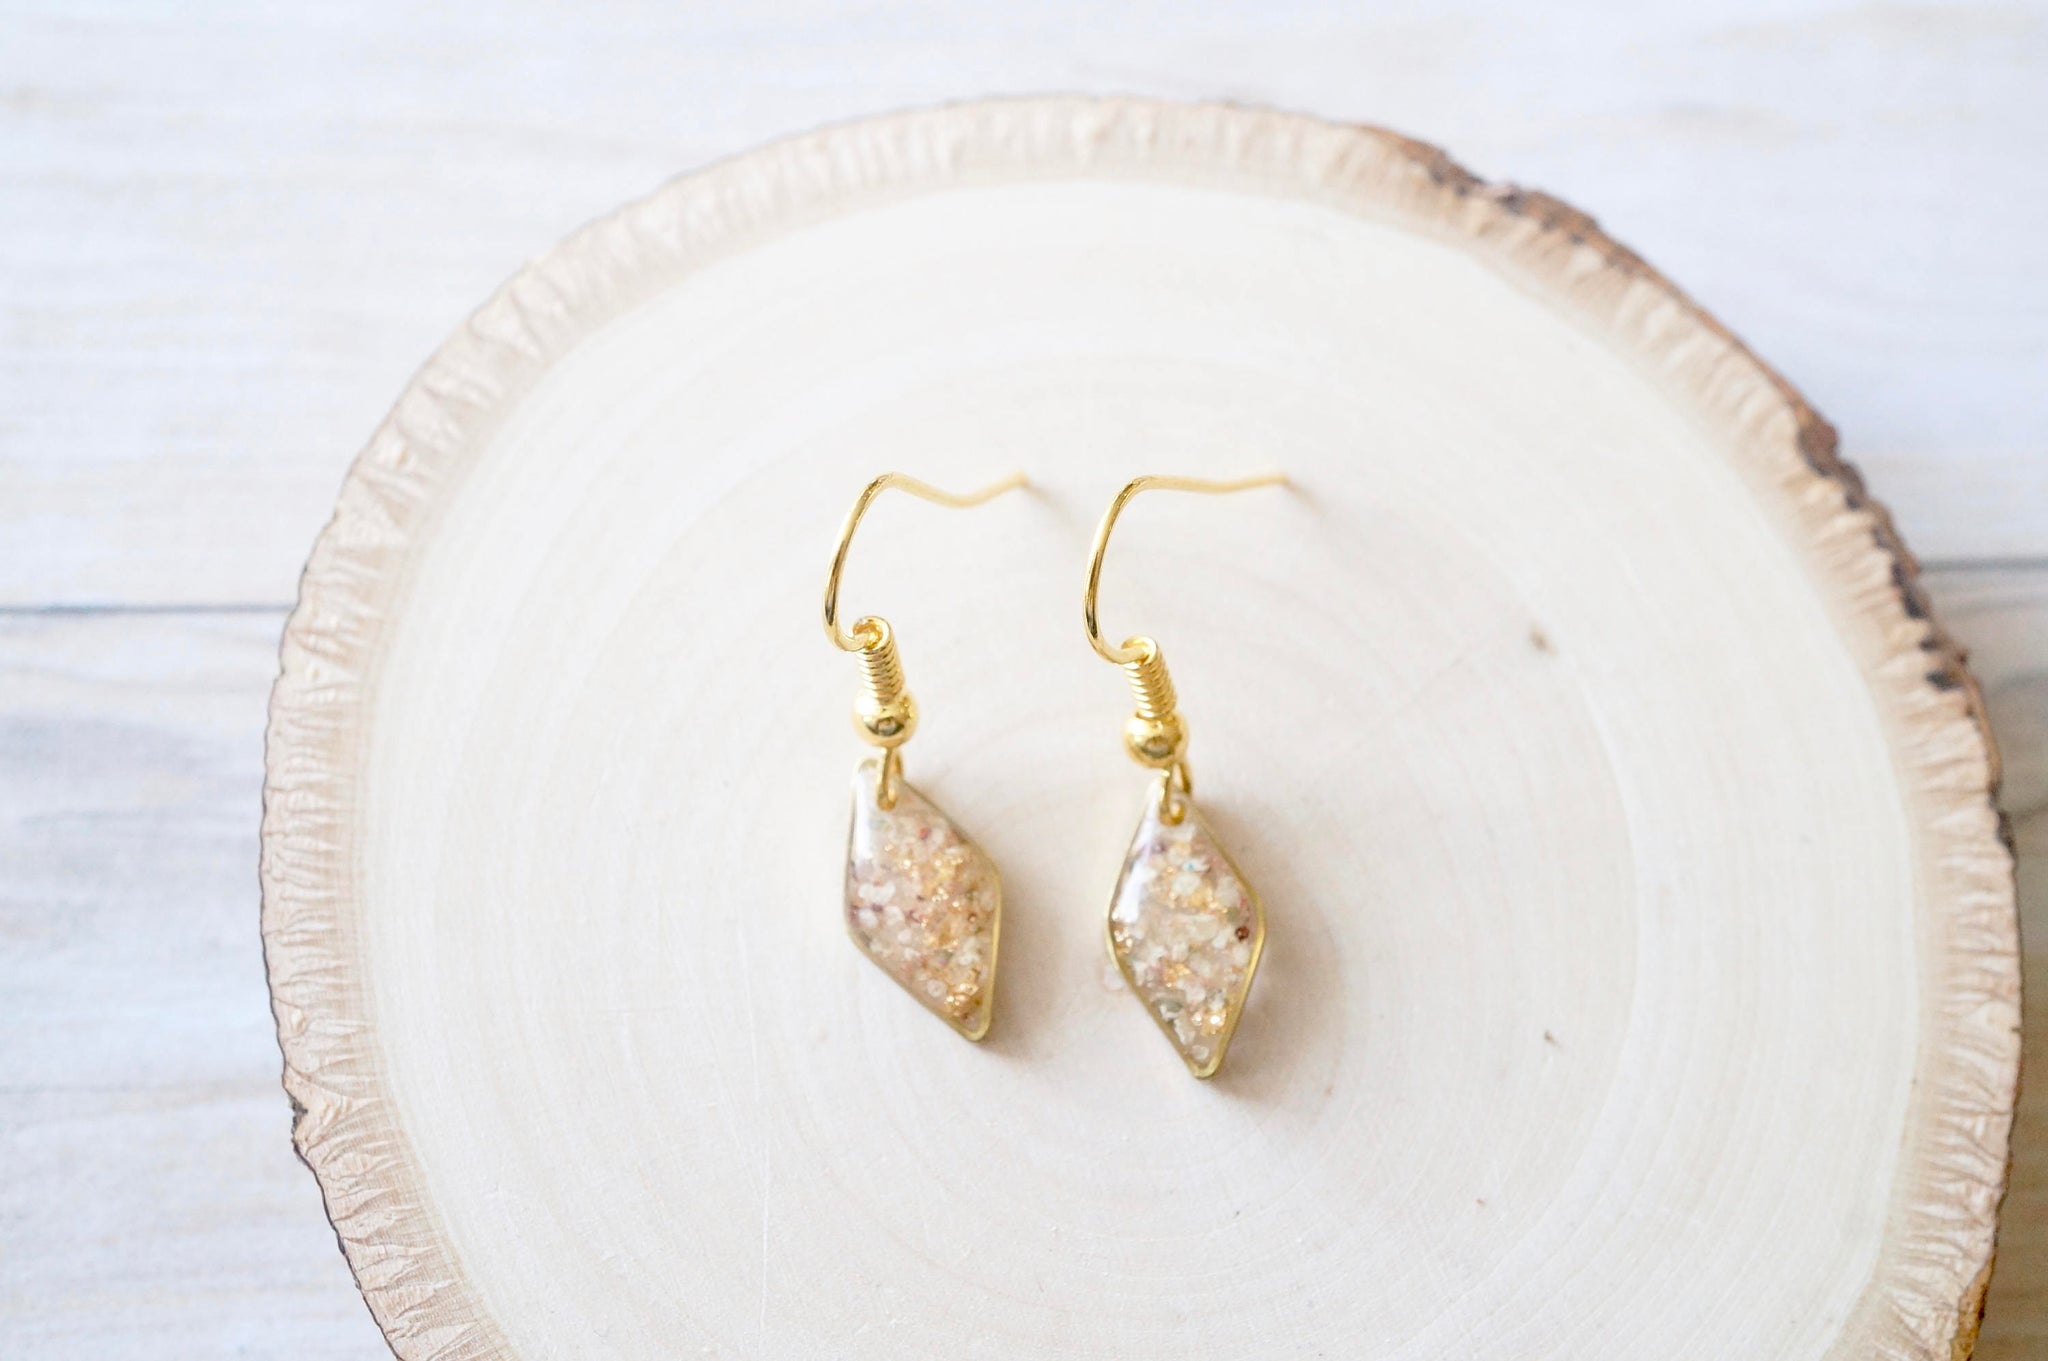 Real Dried Flowers and Resin Earrings in Gold with Whites Champagne Mix with Real Gold Foil